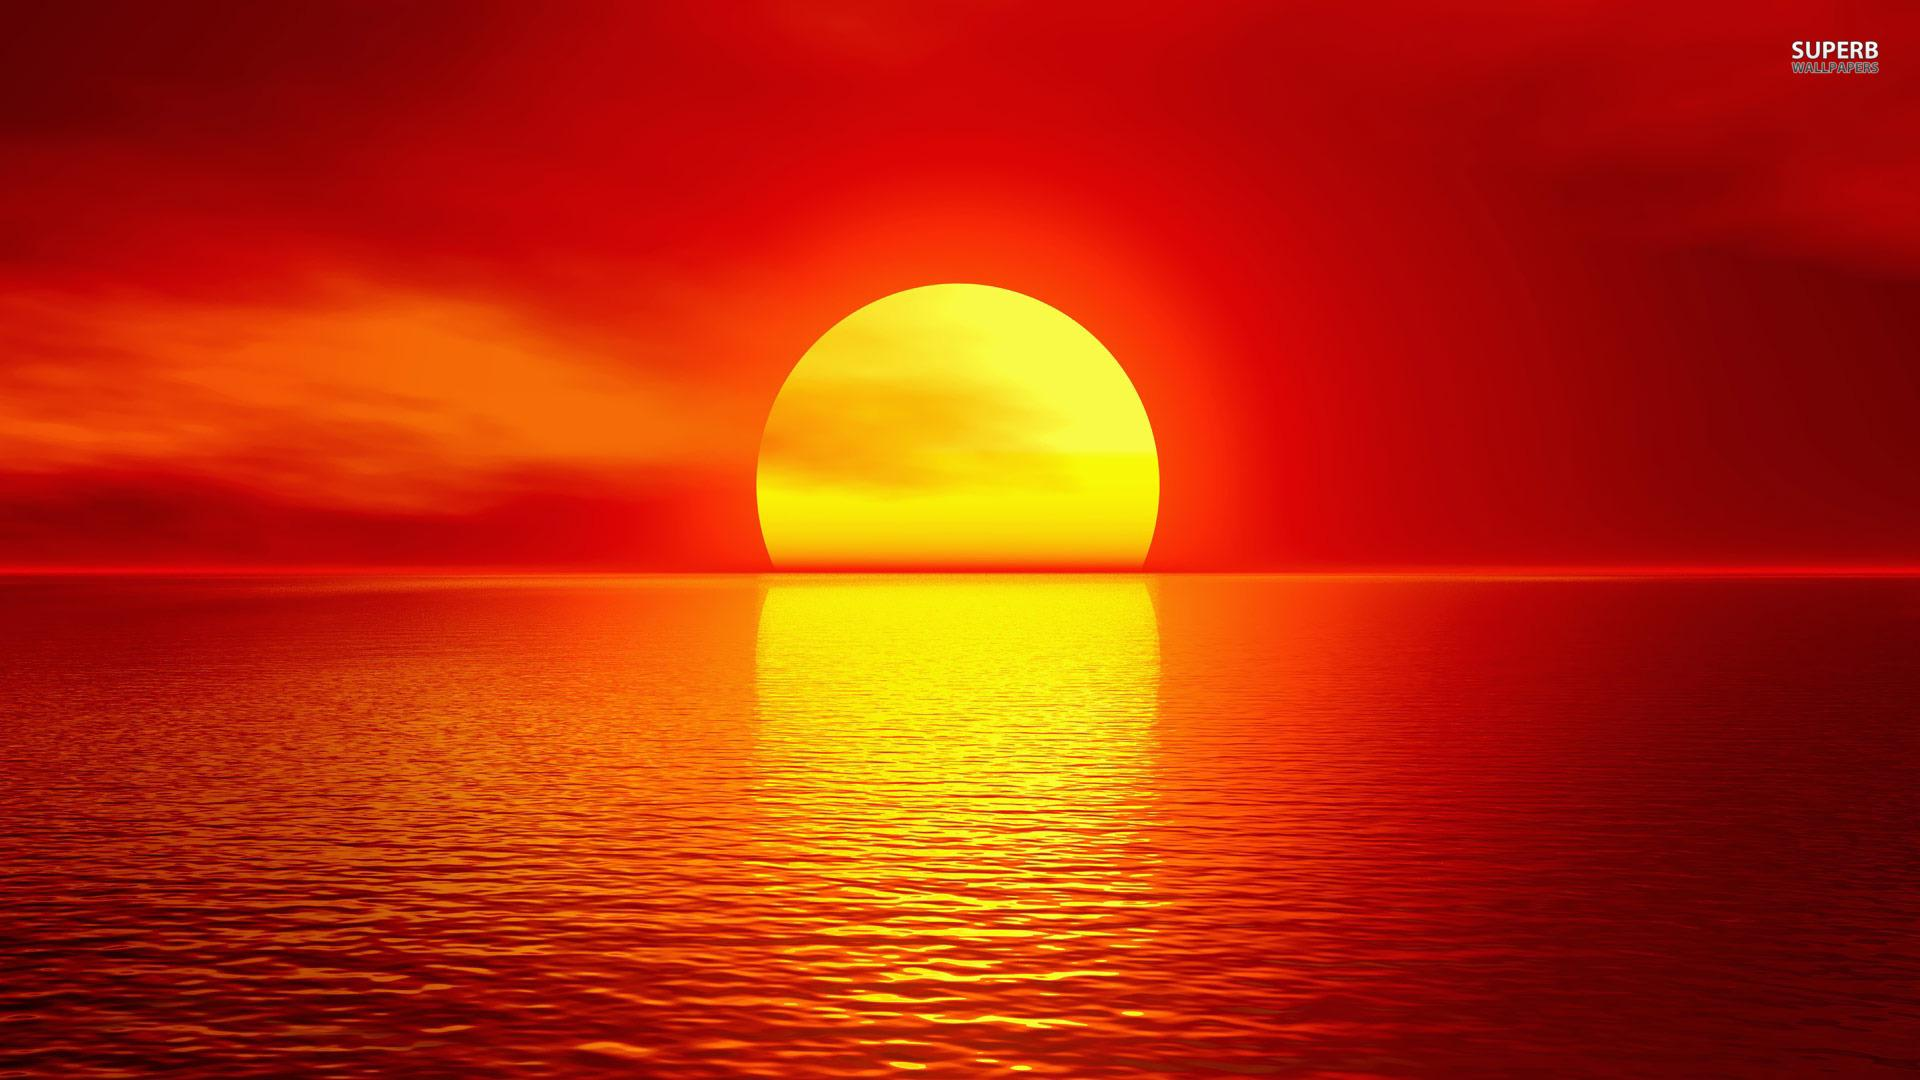 Beautiful Sunset wallpaper 1920x1080 53073 1920x1080